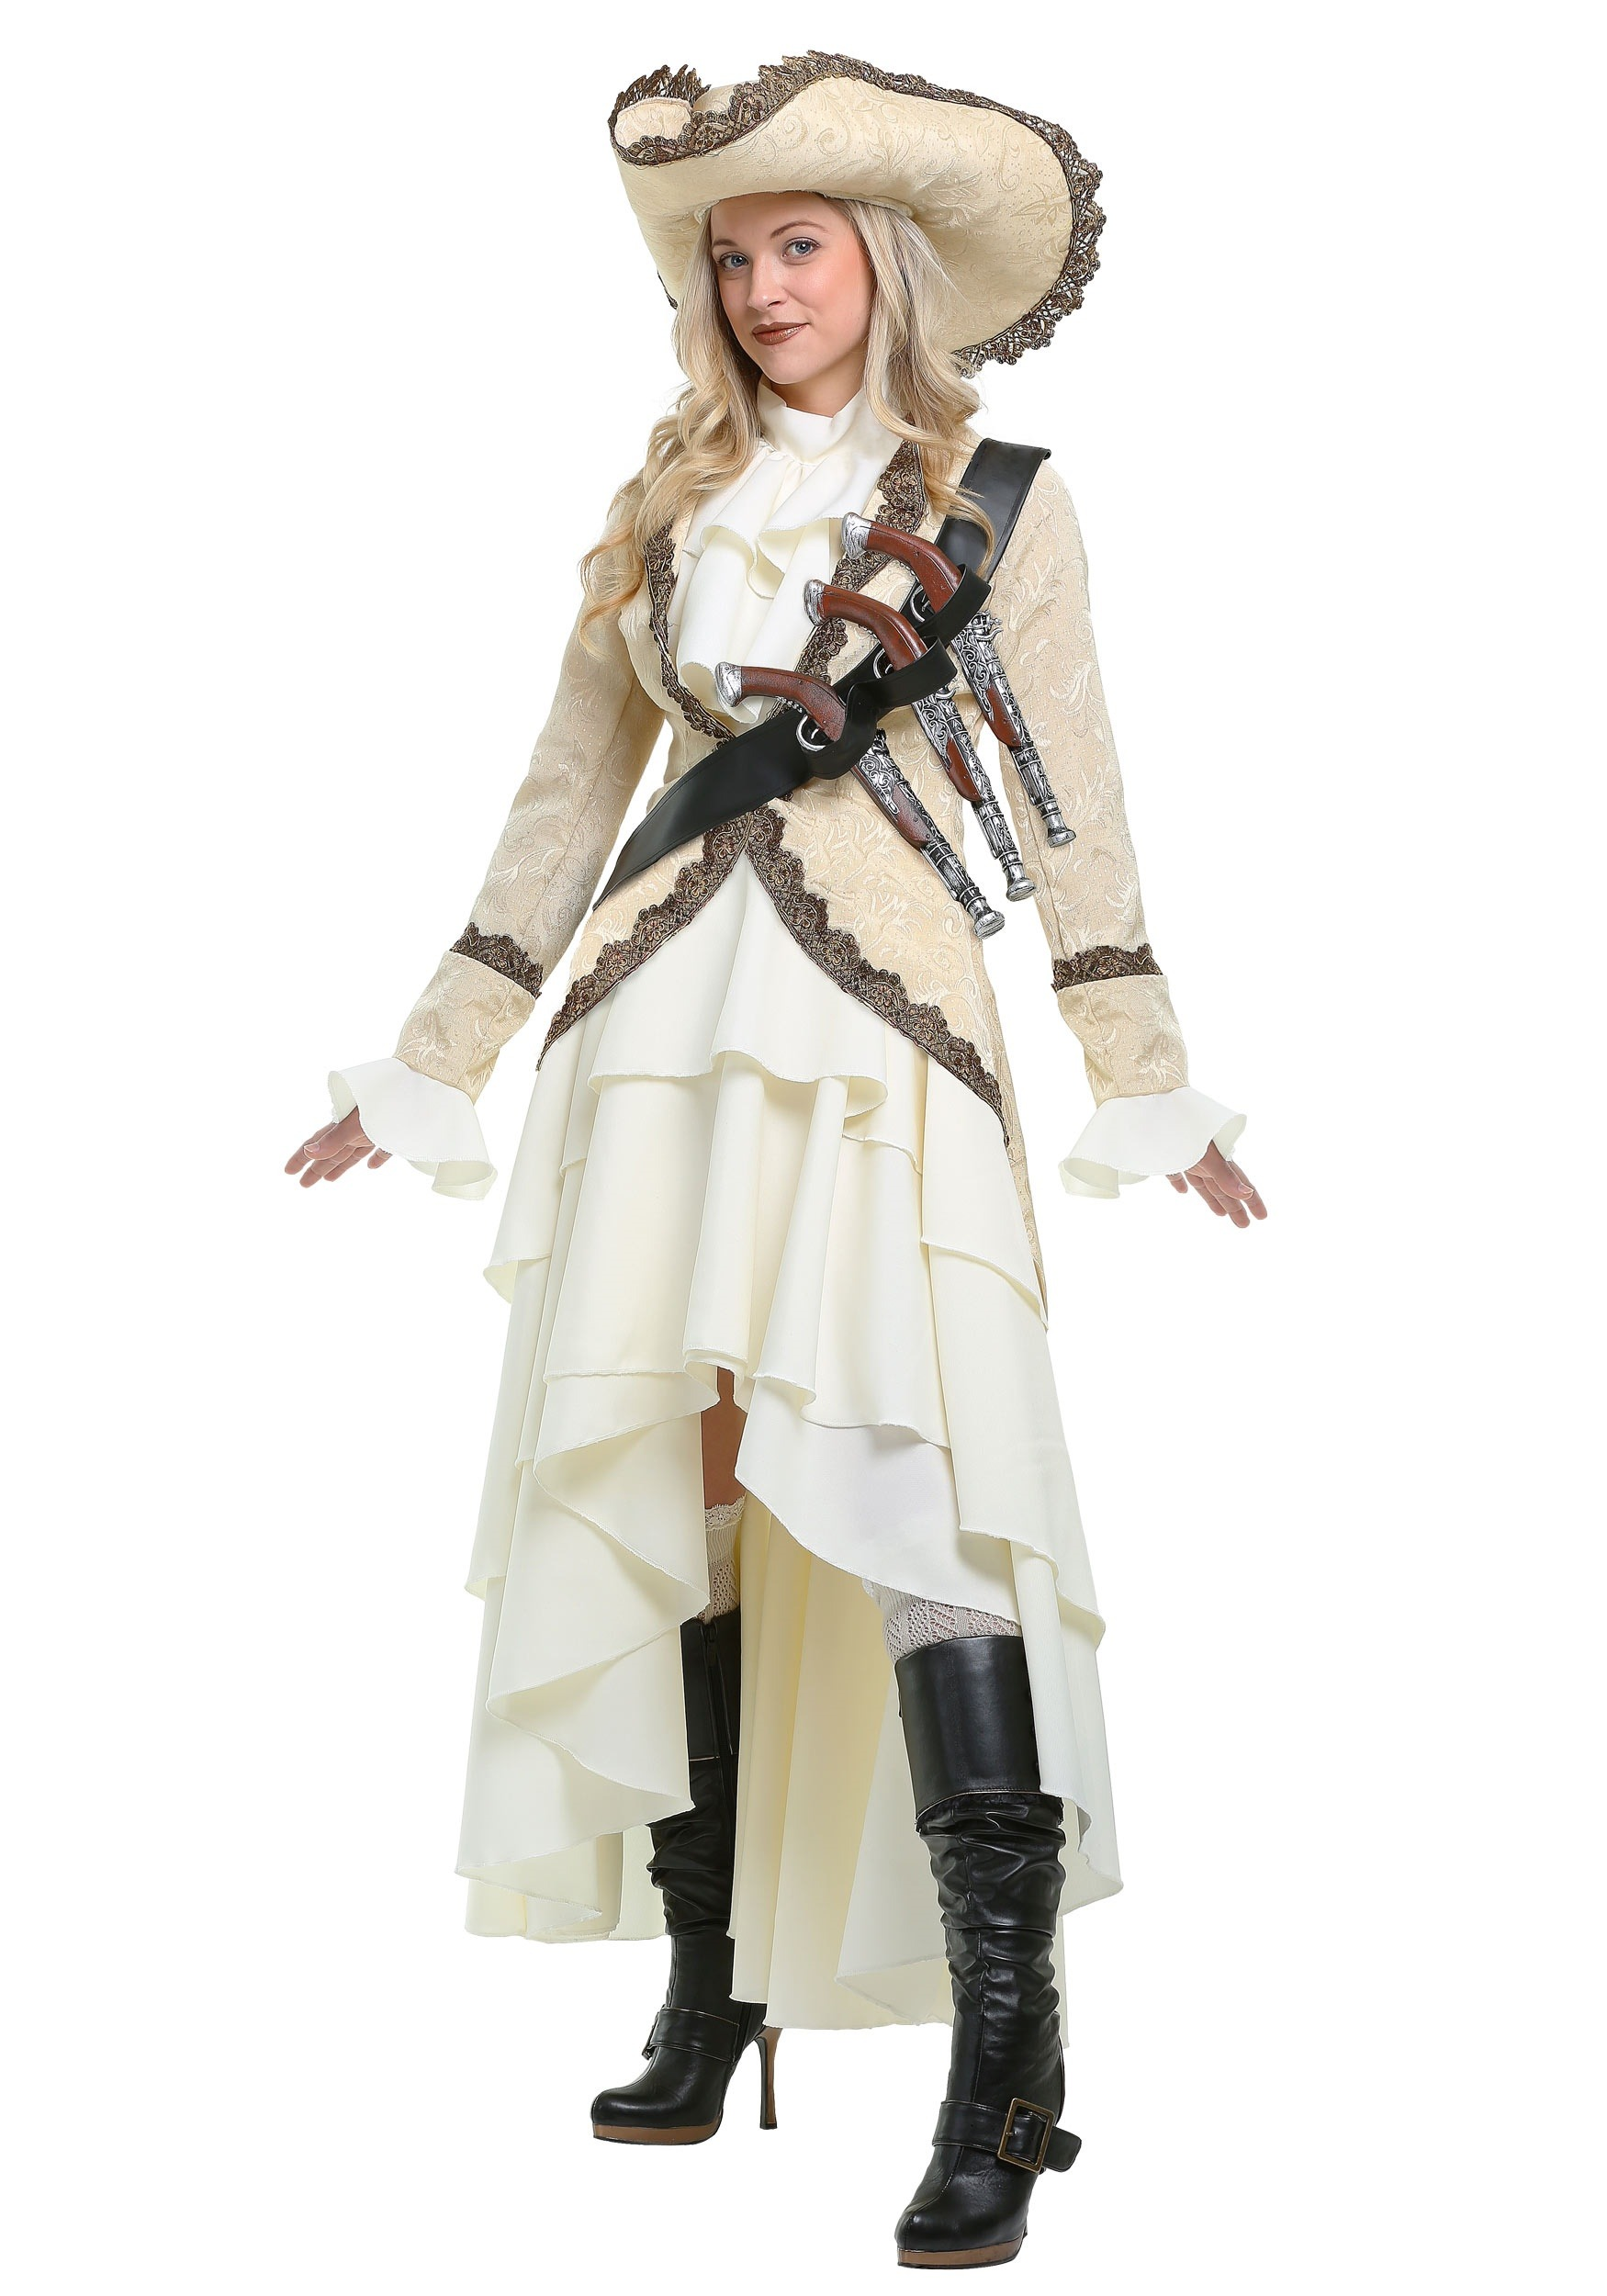 Pirate clothes for women